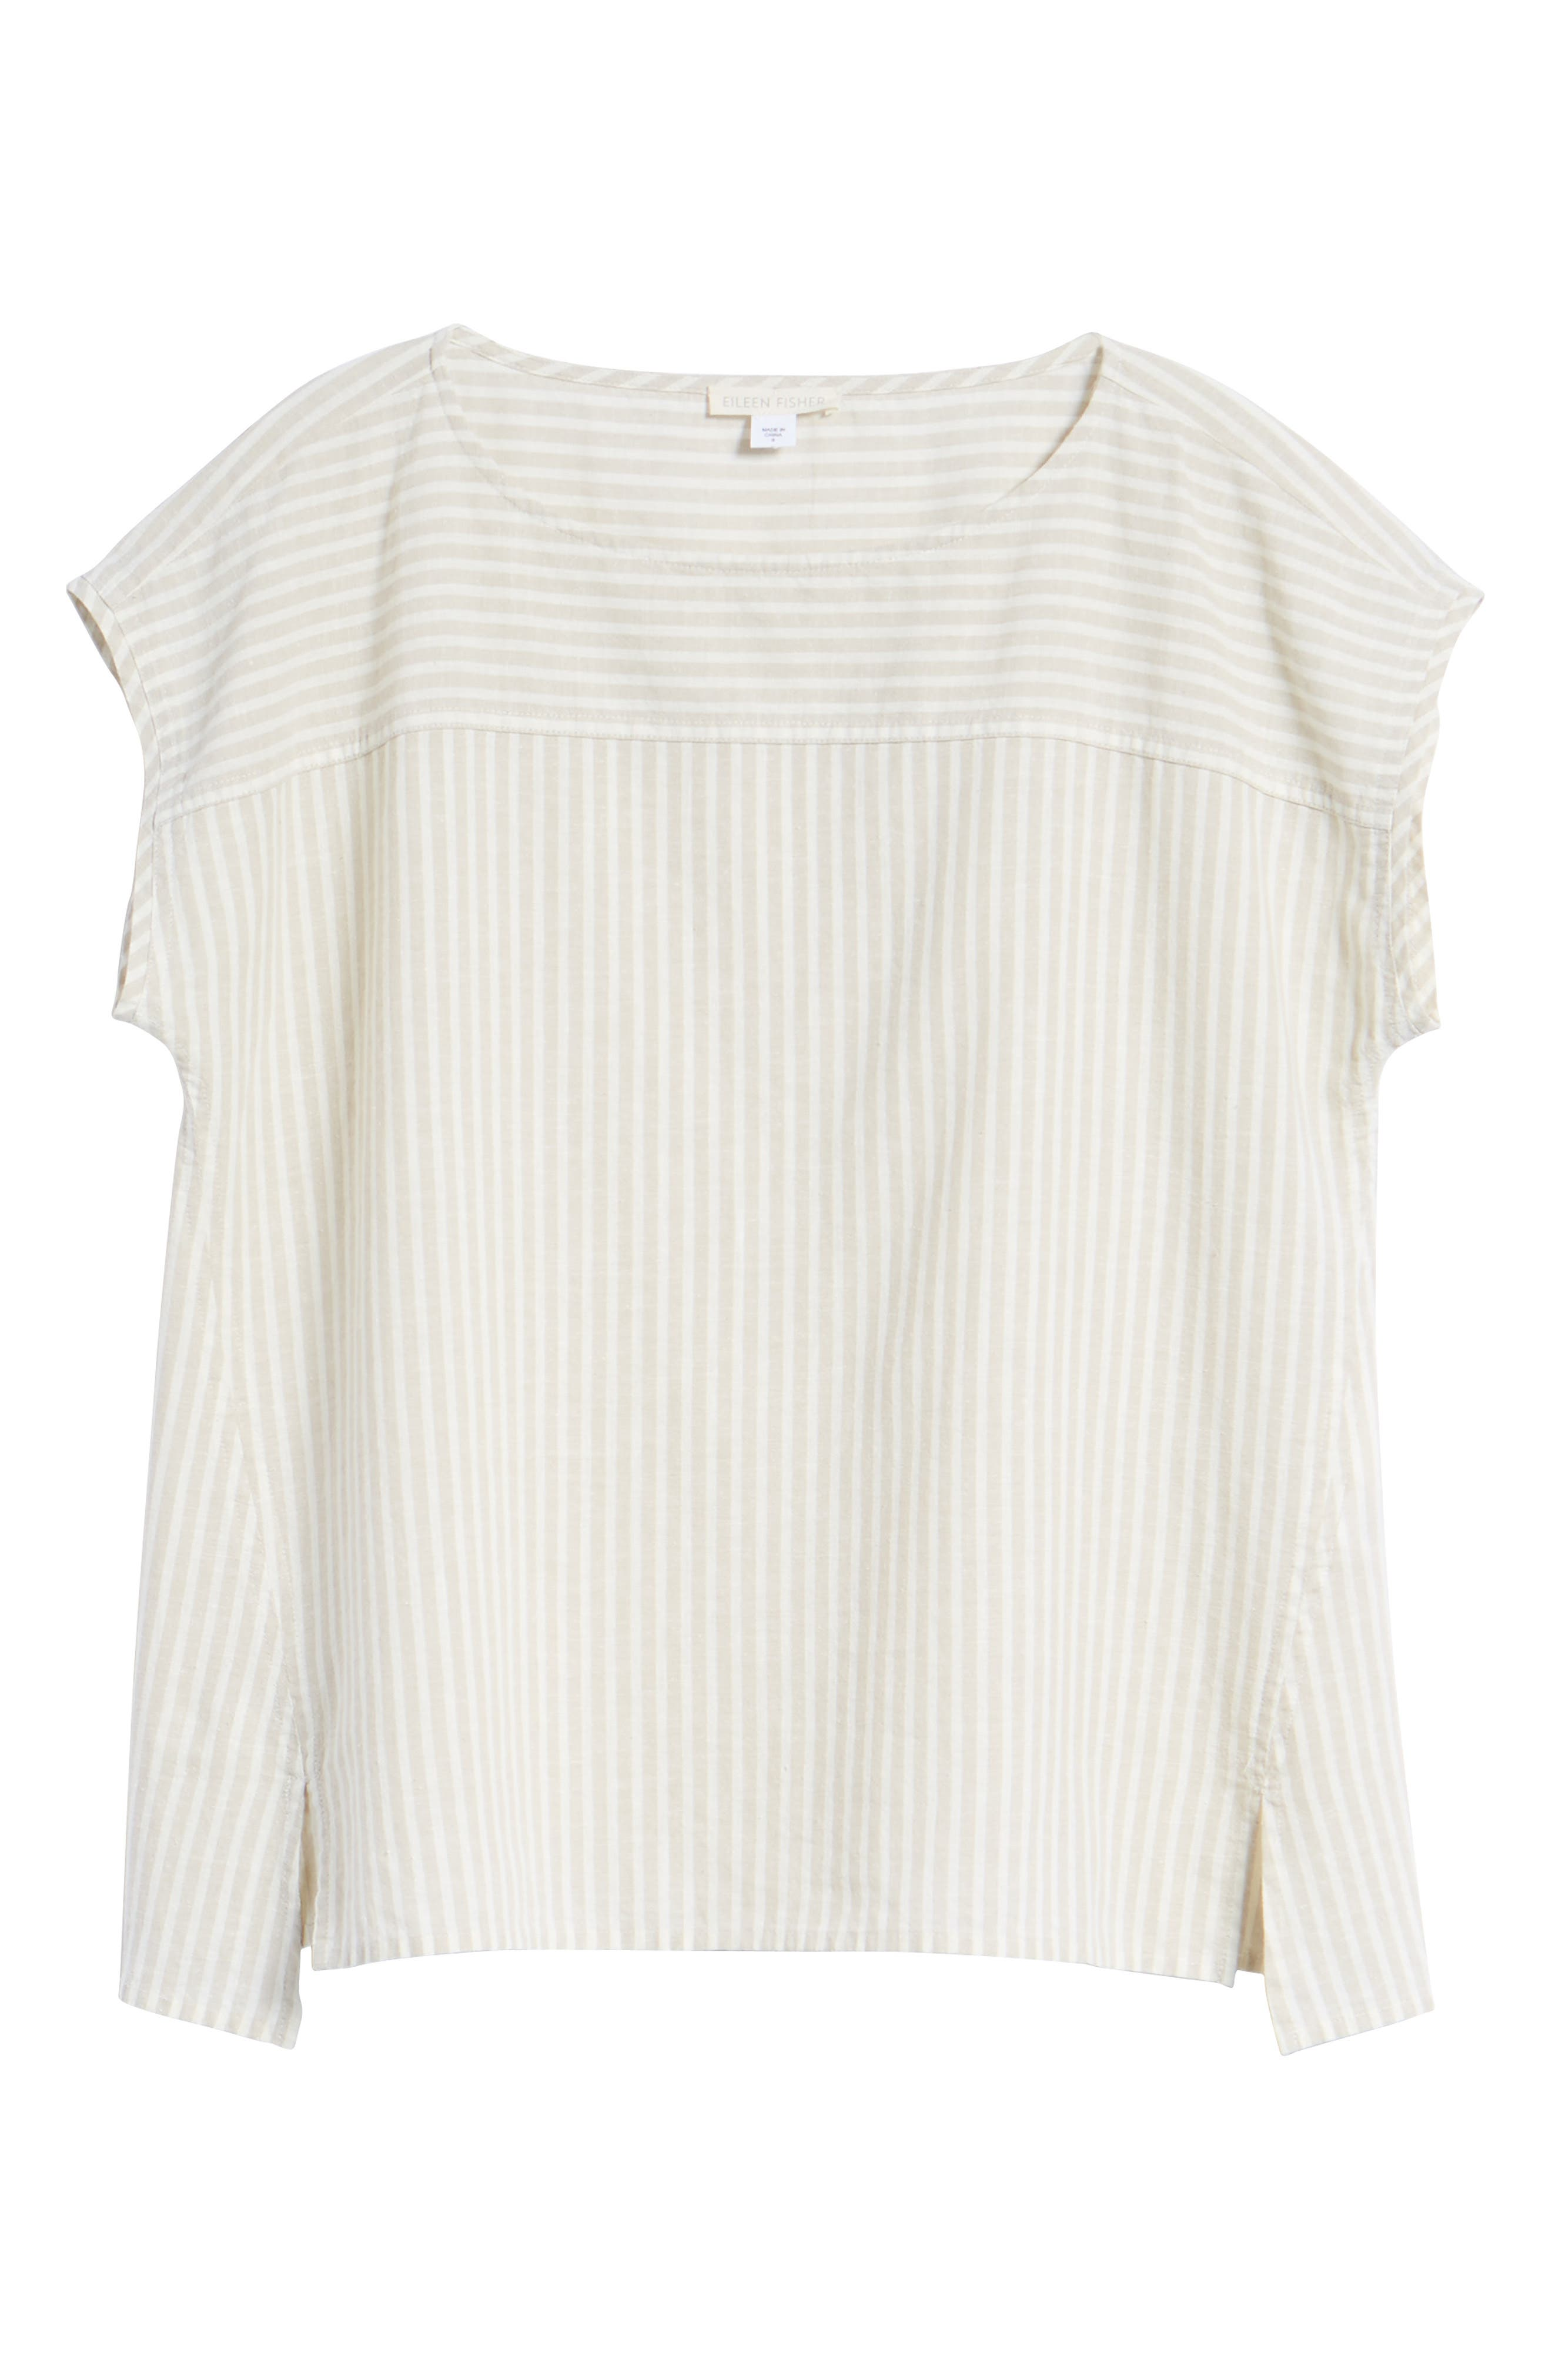 Stripe Hemp & Organic Cotton Swing Top,                             Alternate thumbnail 7, color,                             257